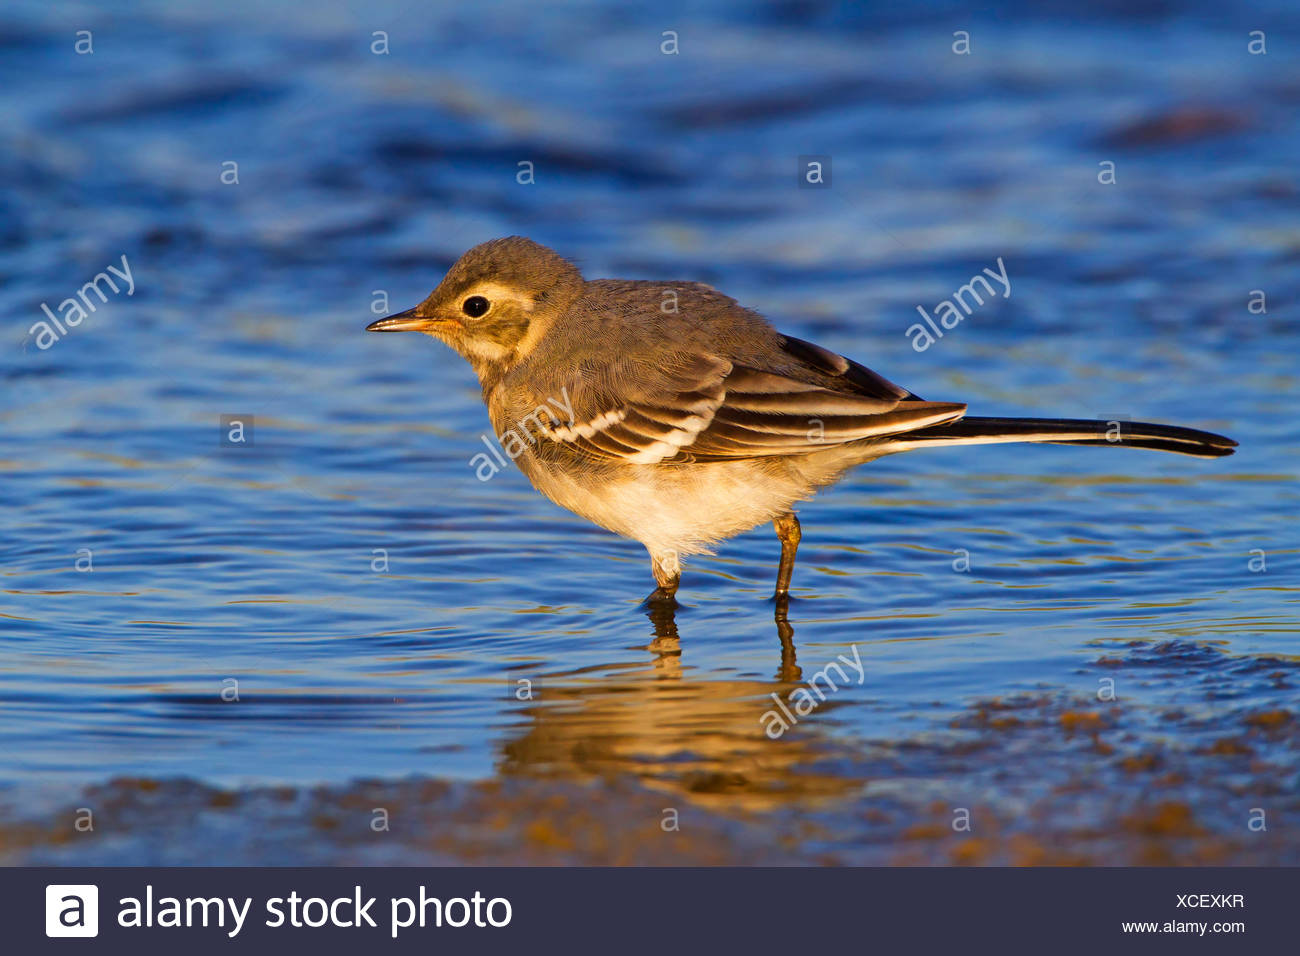 pied wagtail (Motacilla alba), on the feed in shallow water, Germany, Rhineland-Palatinate - Stock Image